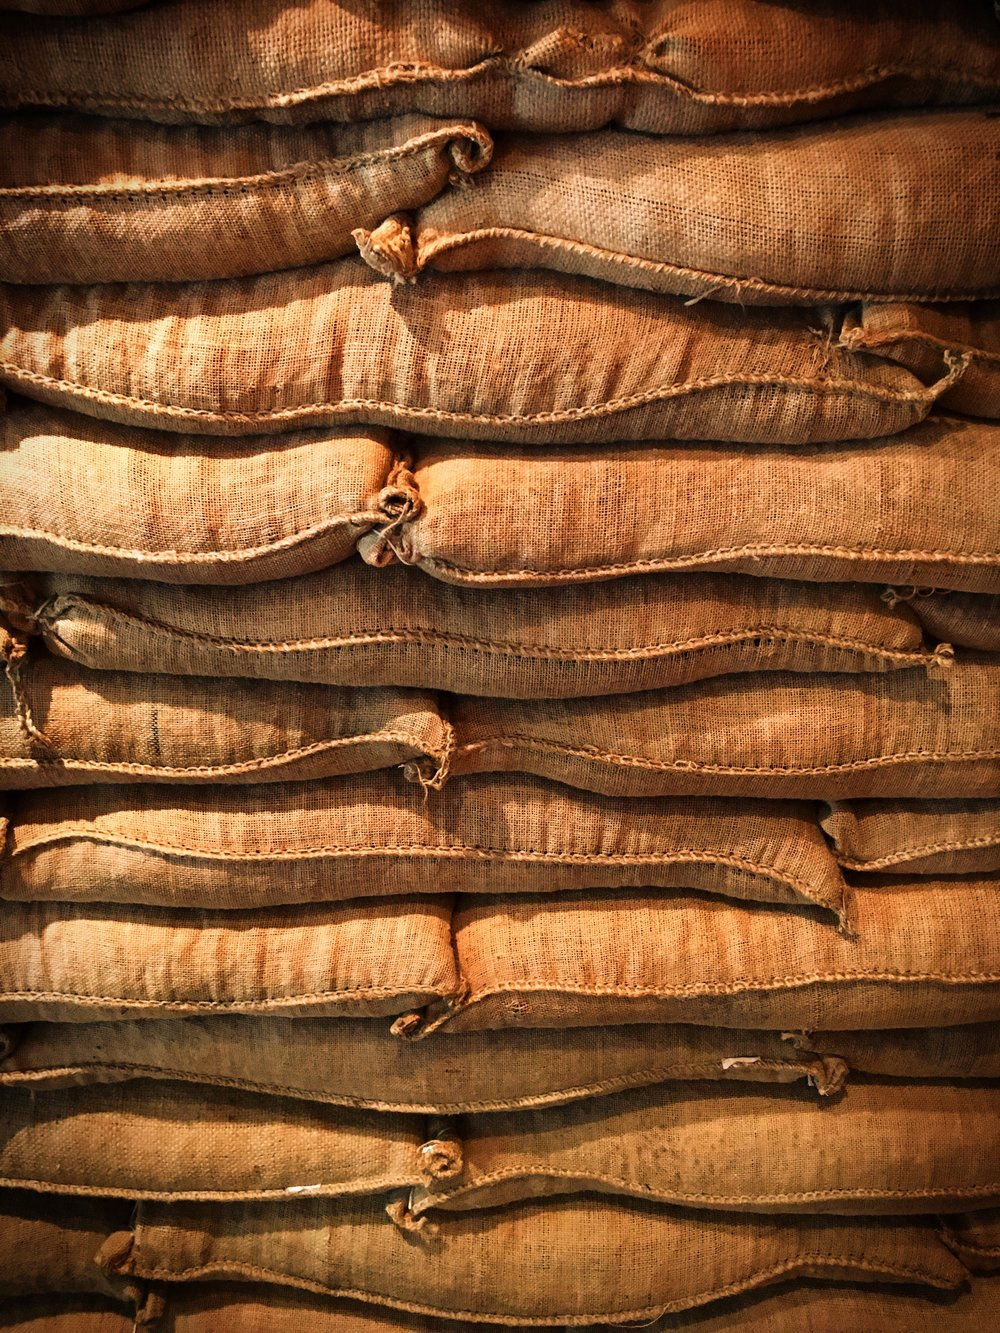 El Vaquero- Espresso Blend - Flavor Notes: Chocolate, Fruity, SyrupBrewing Methods: Great for espresso and could be used in a french press.El Vaquero is blend that we have all year long. We select different coffees that pair together well for a smooth and balanced espresso.